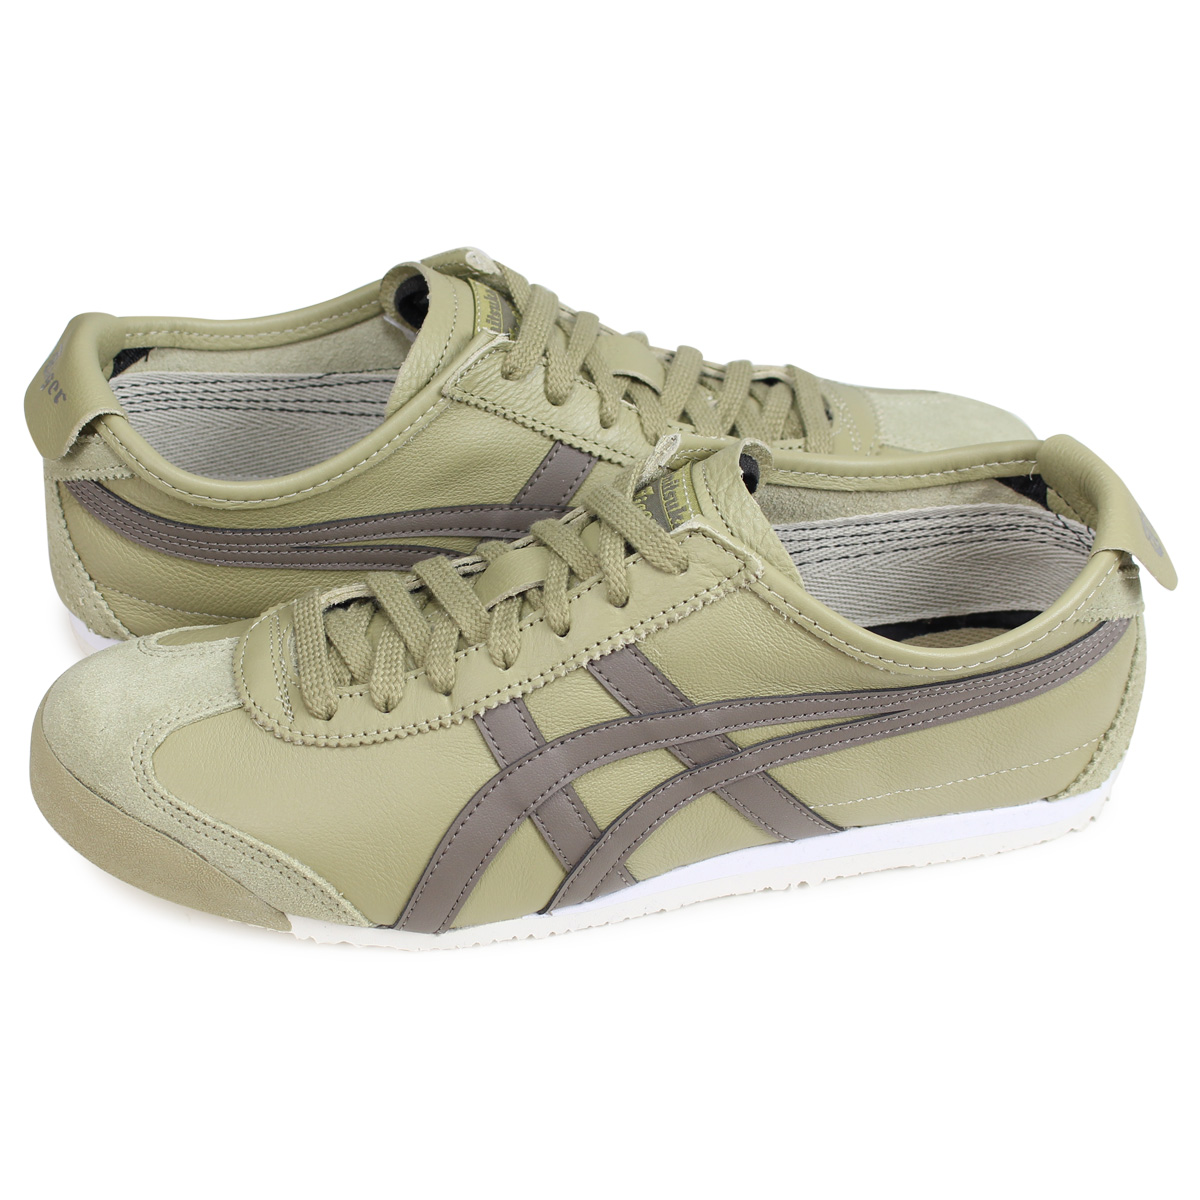 info for d1c96 15289 Onitsuka Tiger MEXICO 66 Onitsuka tiger Mexico 66 men's lady's sneakers  1183A201-251 brown beige